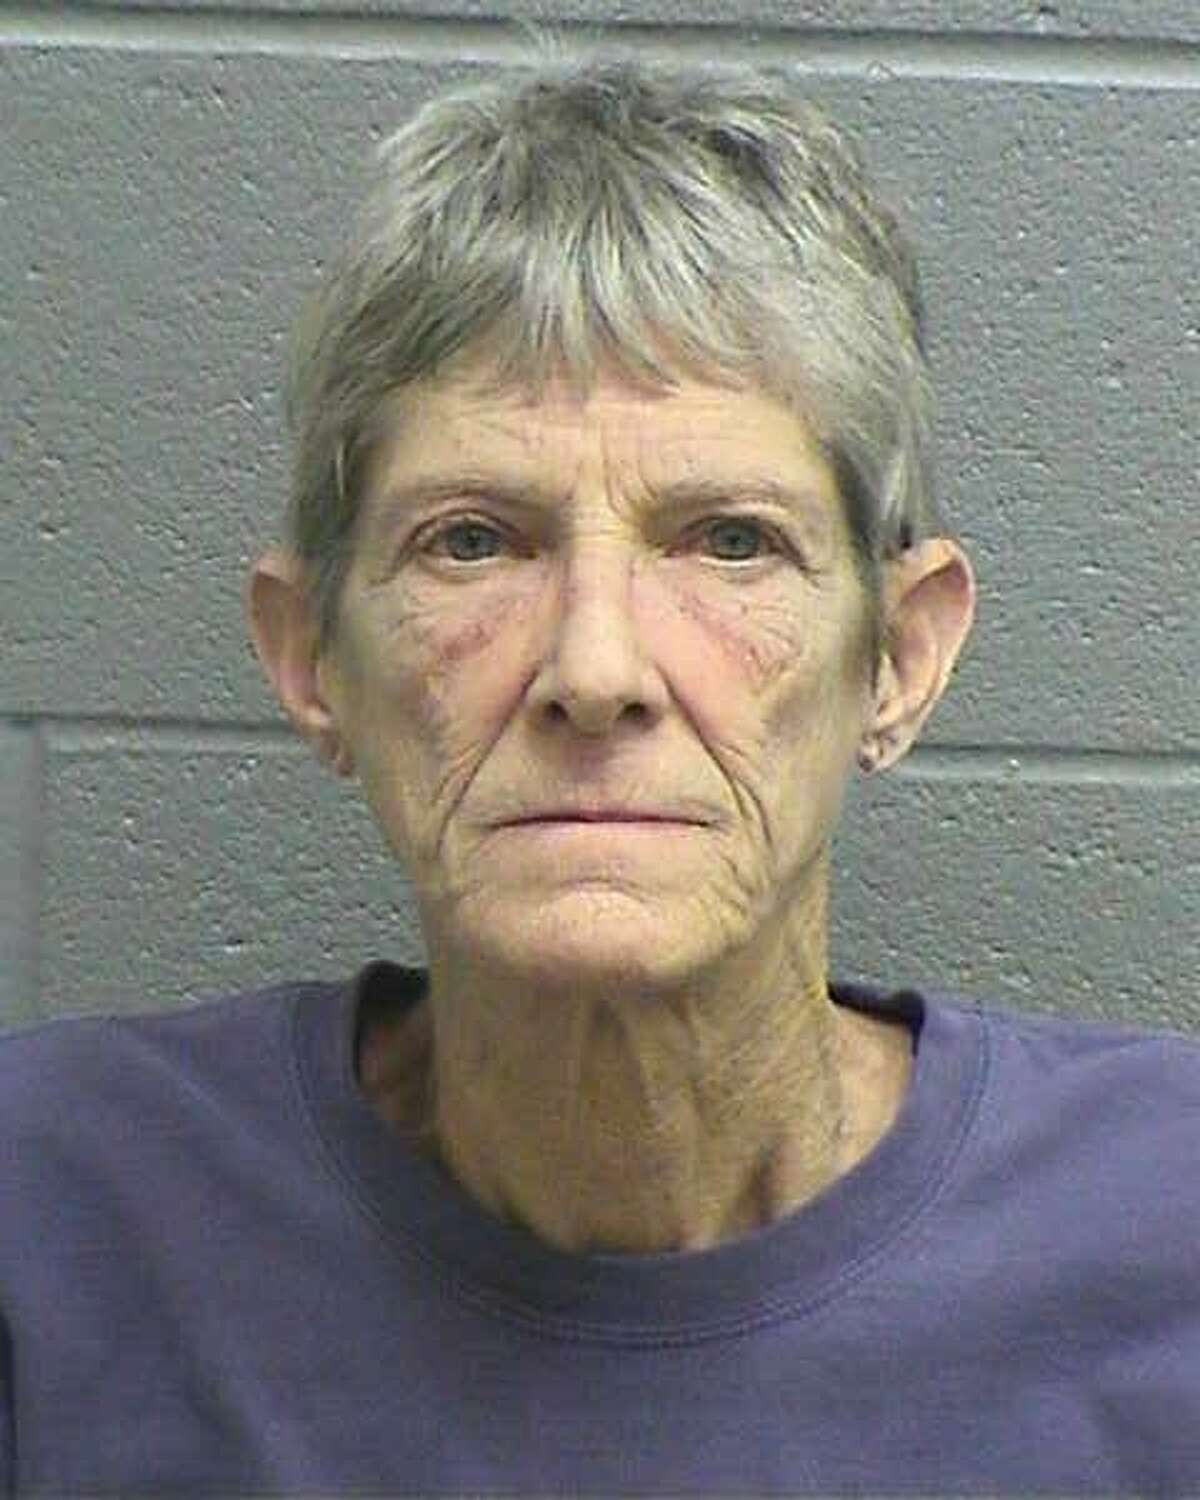 Lisa Ann Nash, 56, was arrested March 9 on a state jail felony charge of injury to an elderly individual.Nash allegedly assaulted an 80-year-old man in her home after he spilled a glass of water in the kitchen, according to the arrest affidavit.If convicted, Nash faces up to two years in prison.